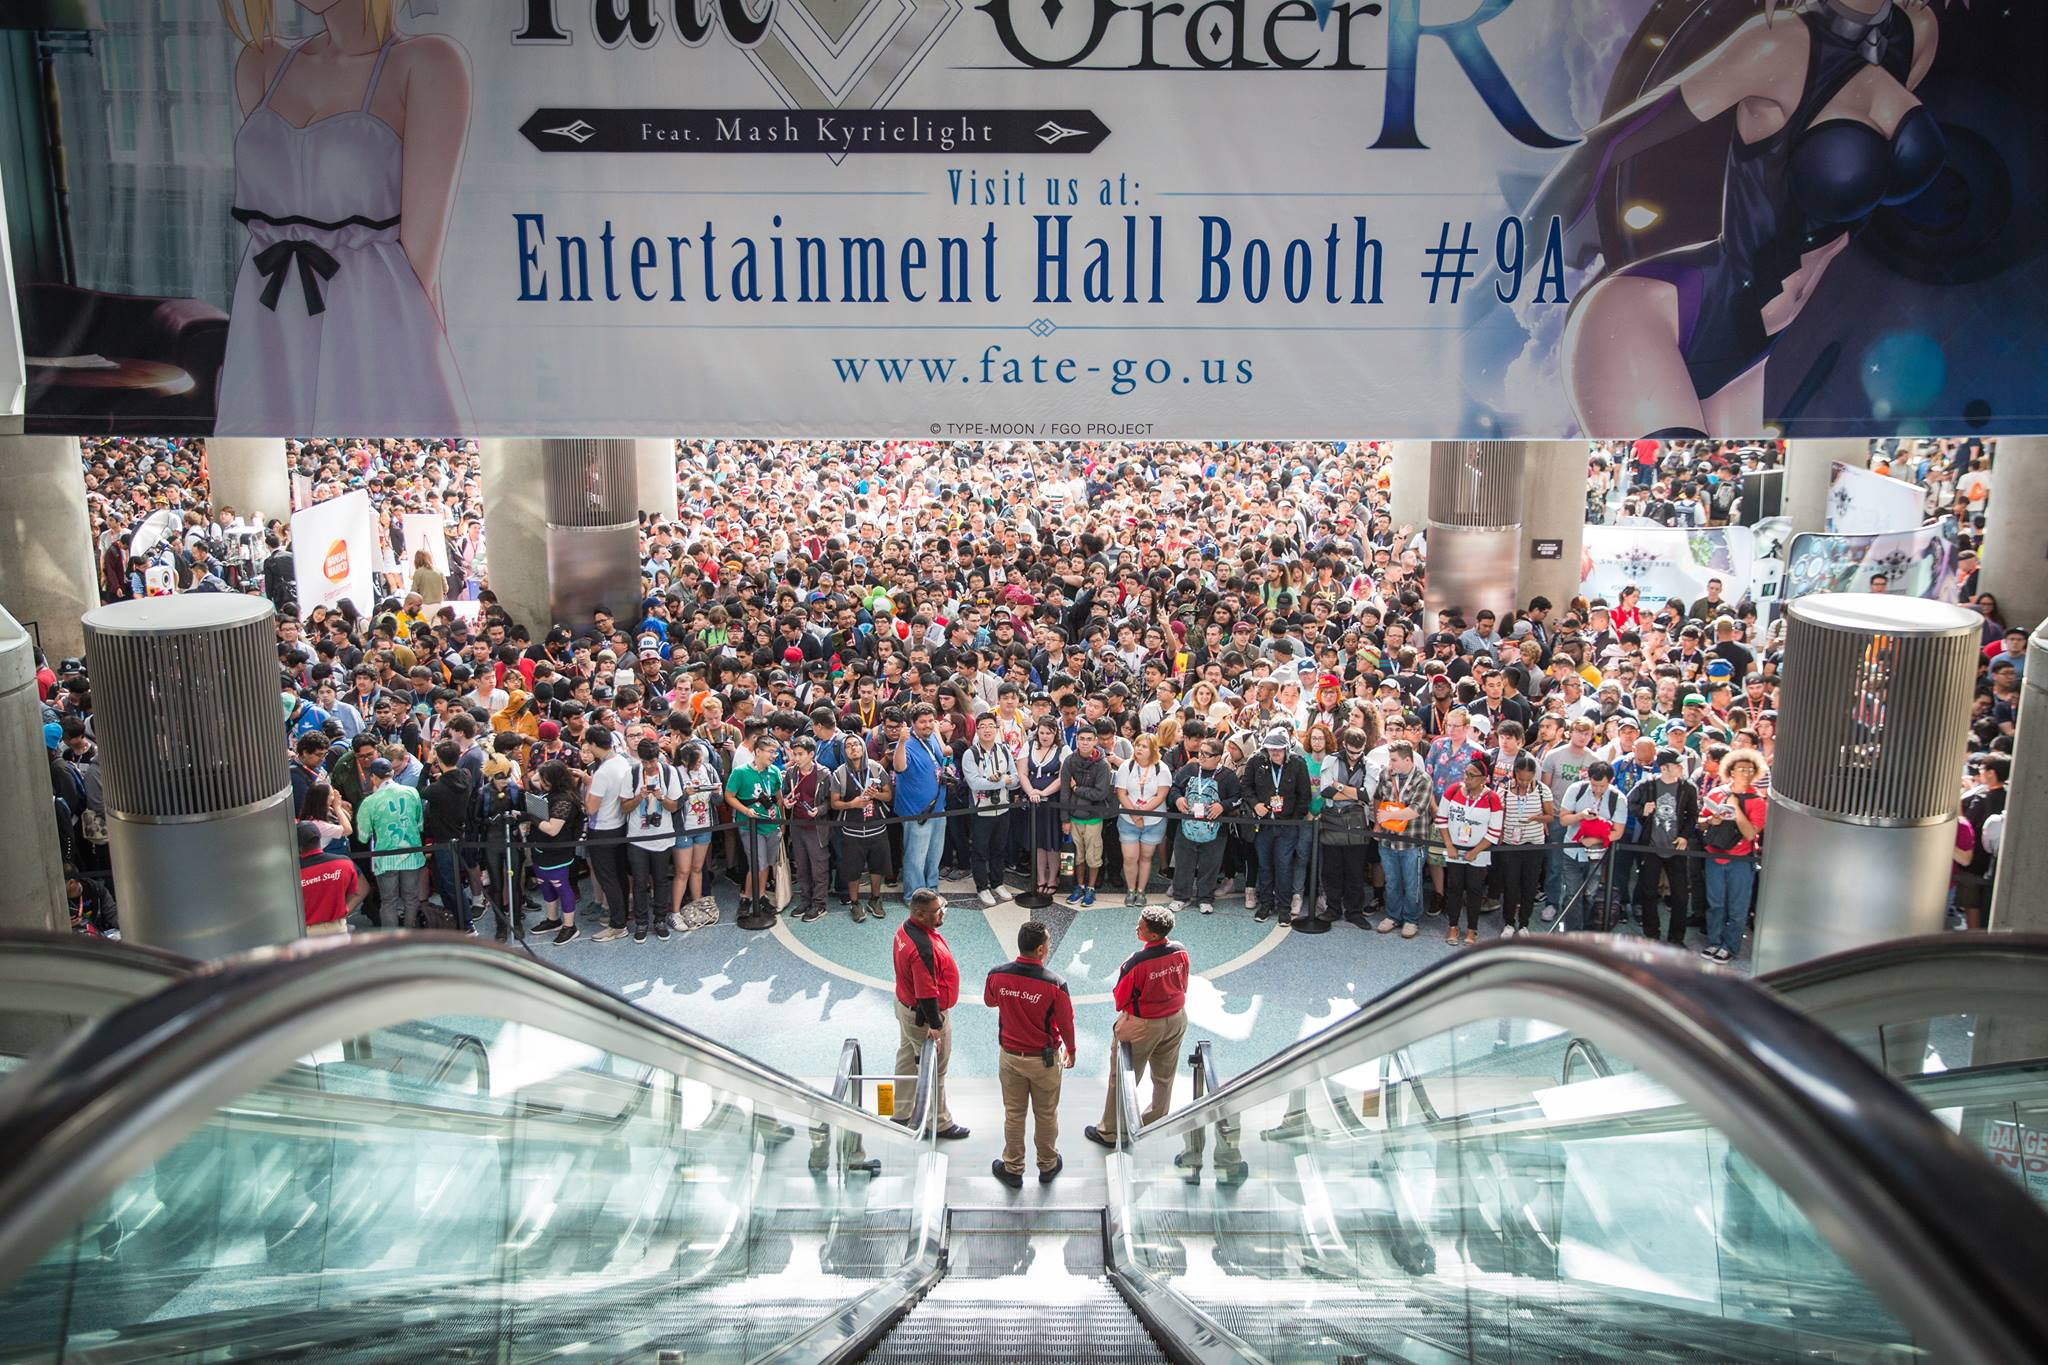 Best Anime Conventions 2019 Anime Expo | Los Angeles Anime Convention